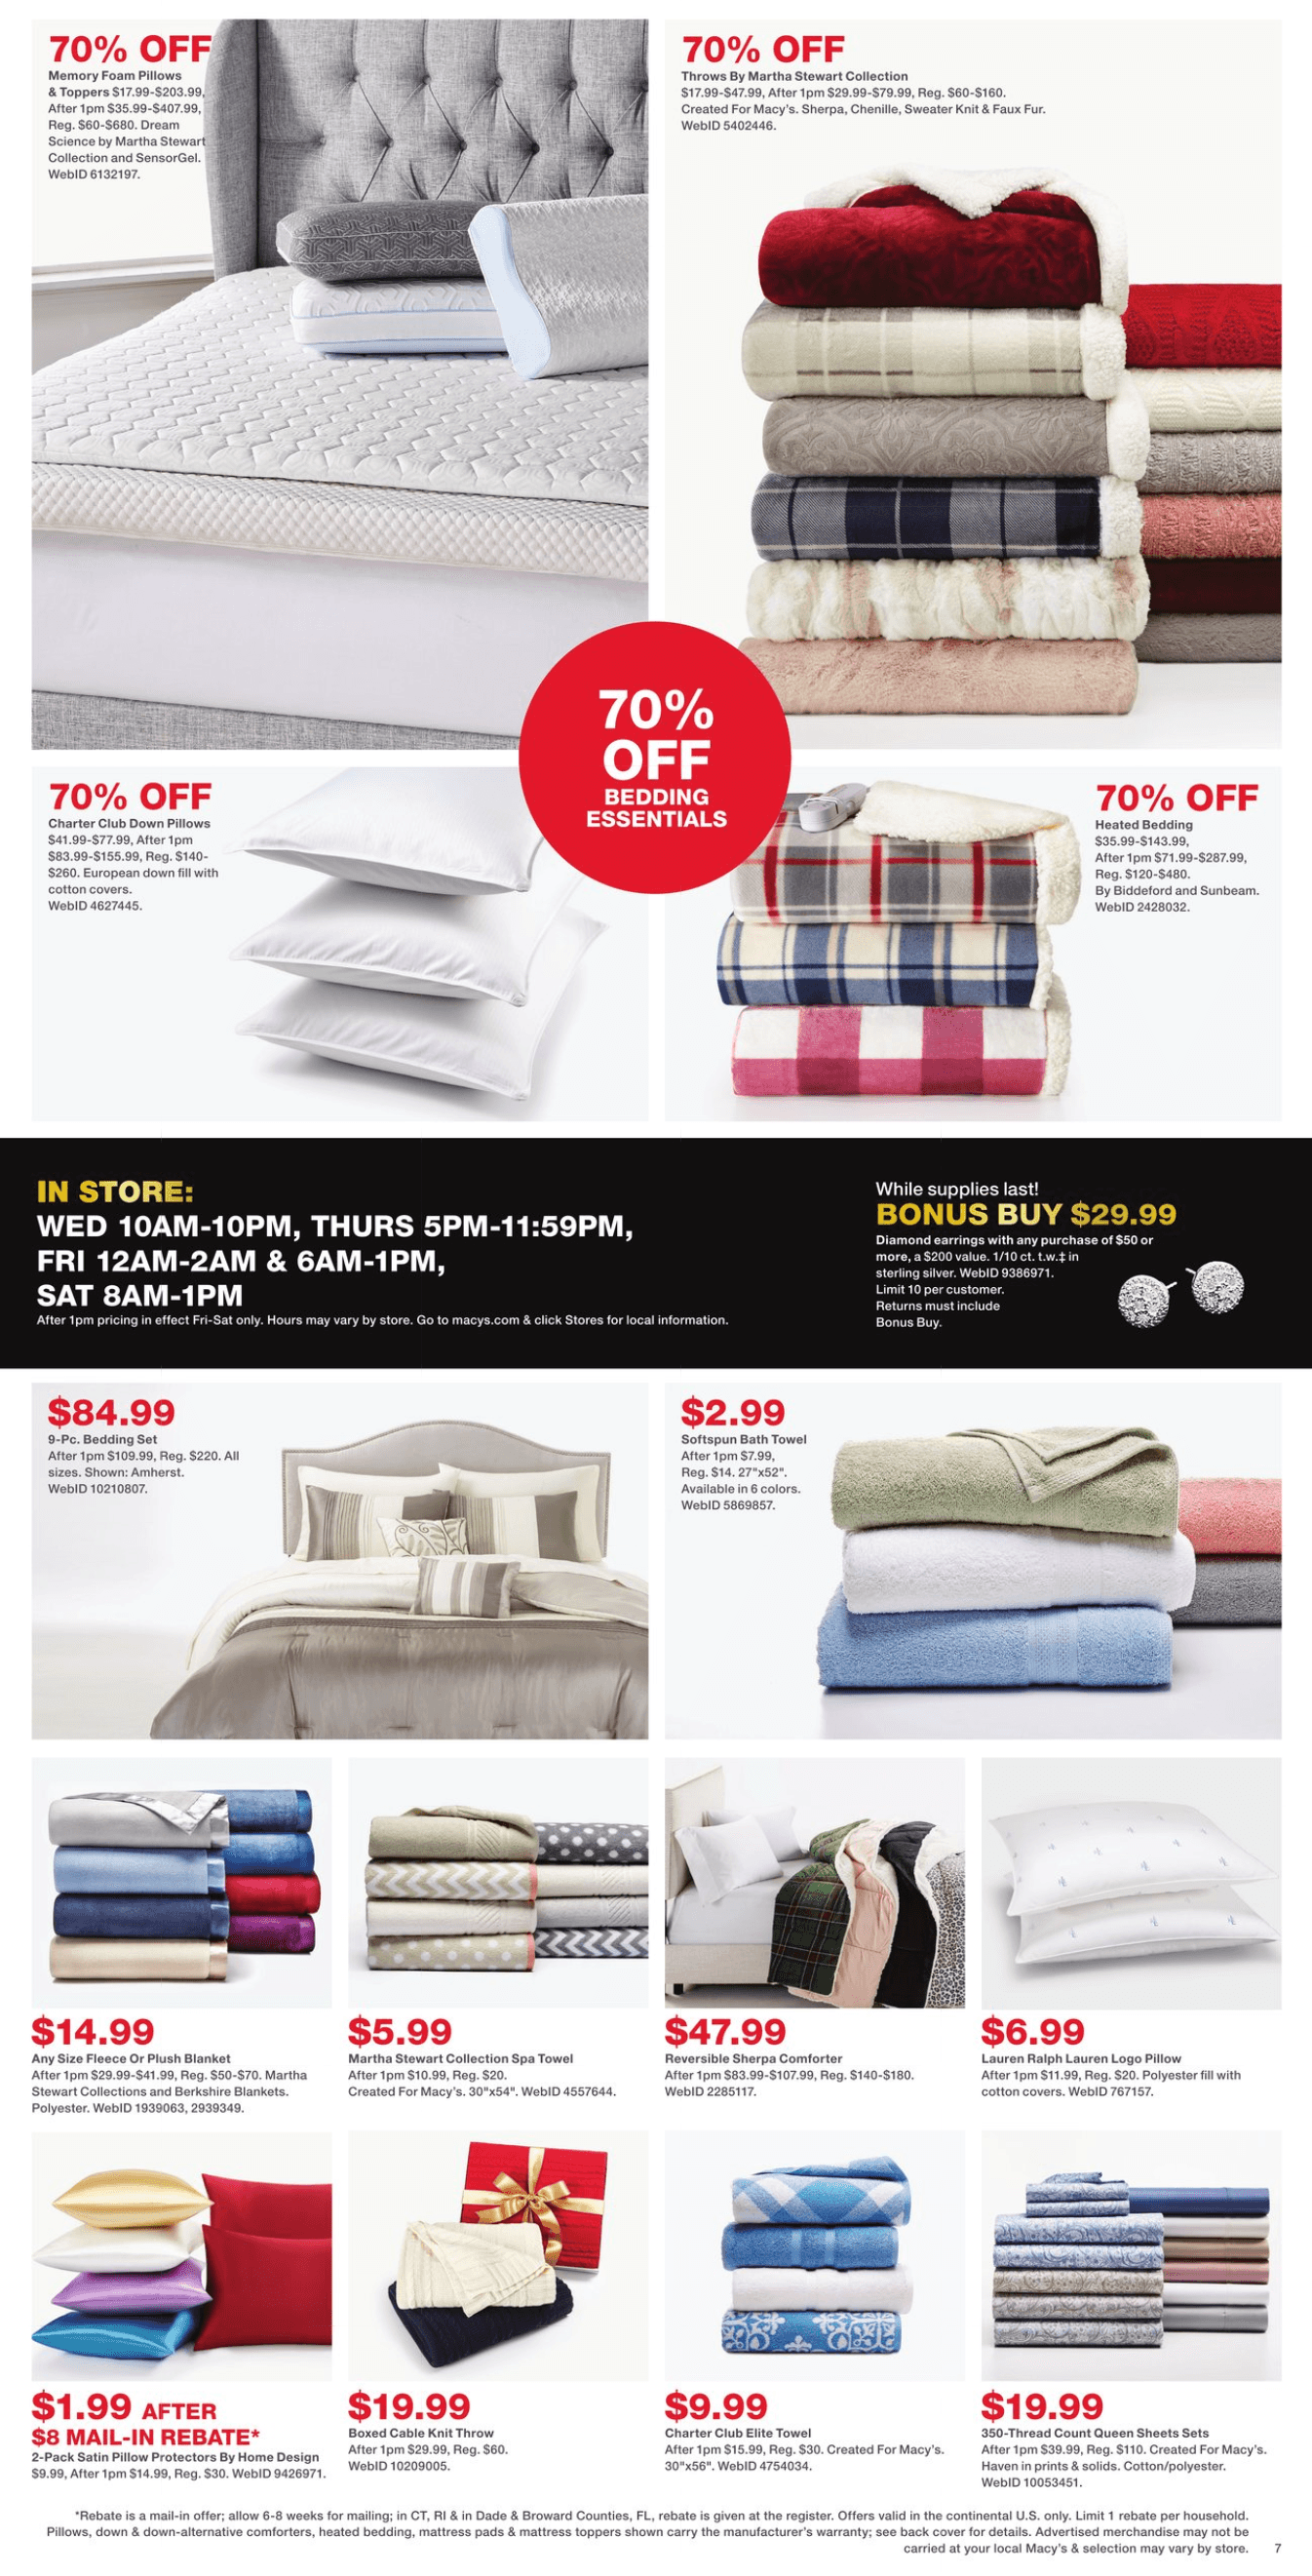 Macy's Black Friday 2019 Page 7